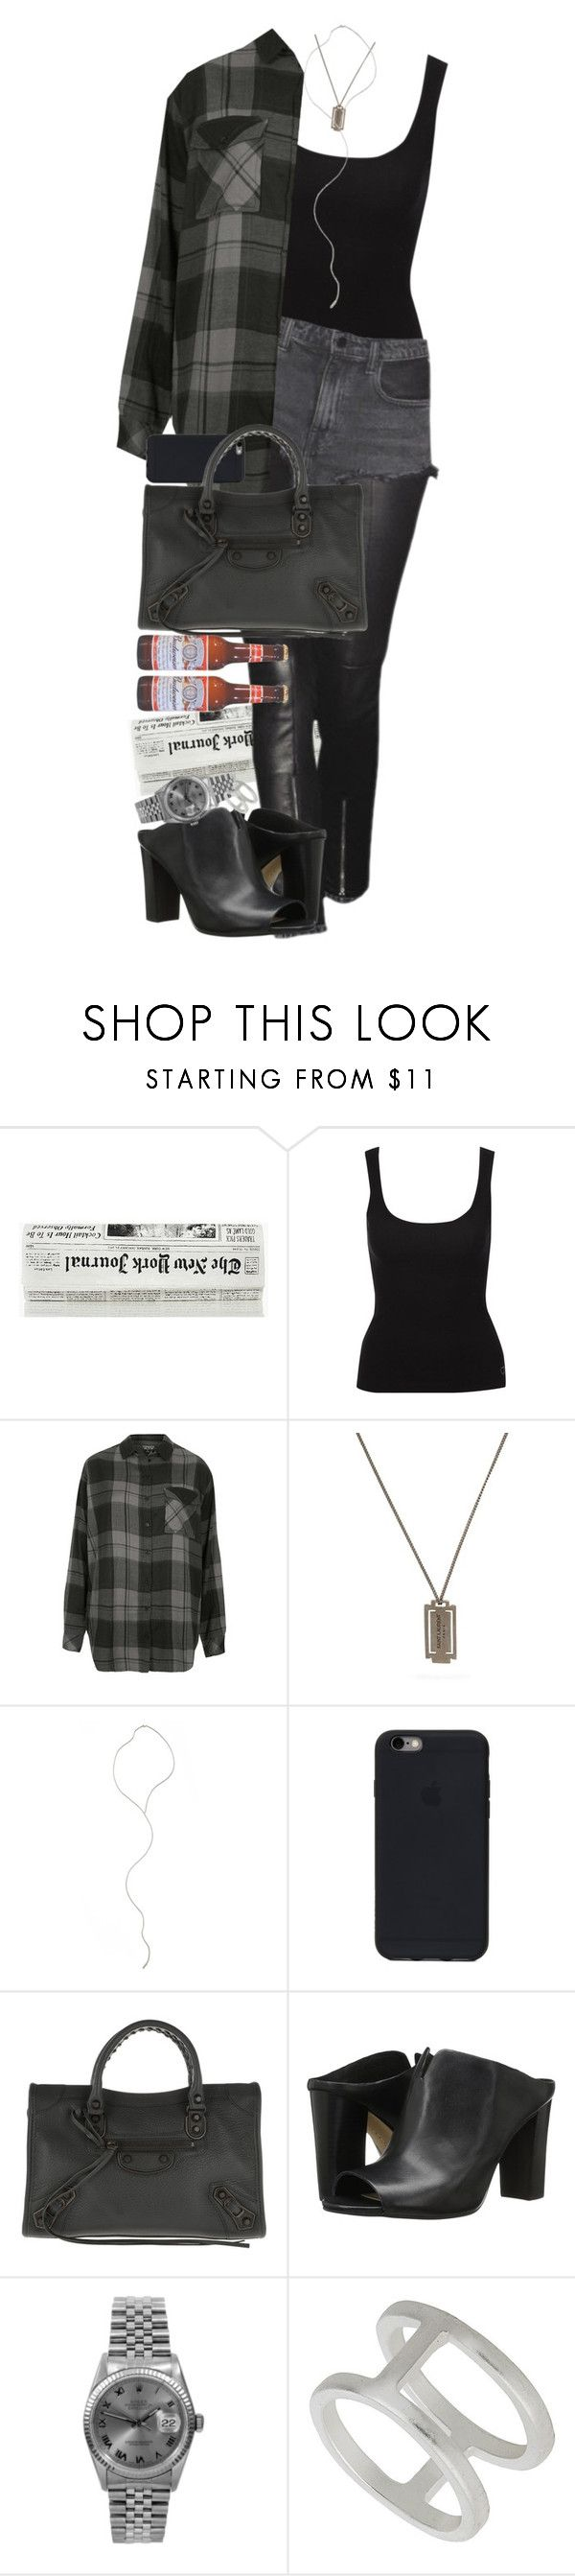 """Grunge."" by quiche ❤ liked on Polyvore featuring Jane Norman, Alexander Wang, Topshop, Yves Saint Laurent, Mara Carrizo Scalise, Balenciaga, Vince Camuto, A2 by Aerosoles and Rolex"